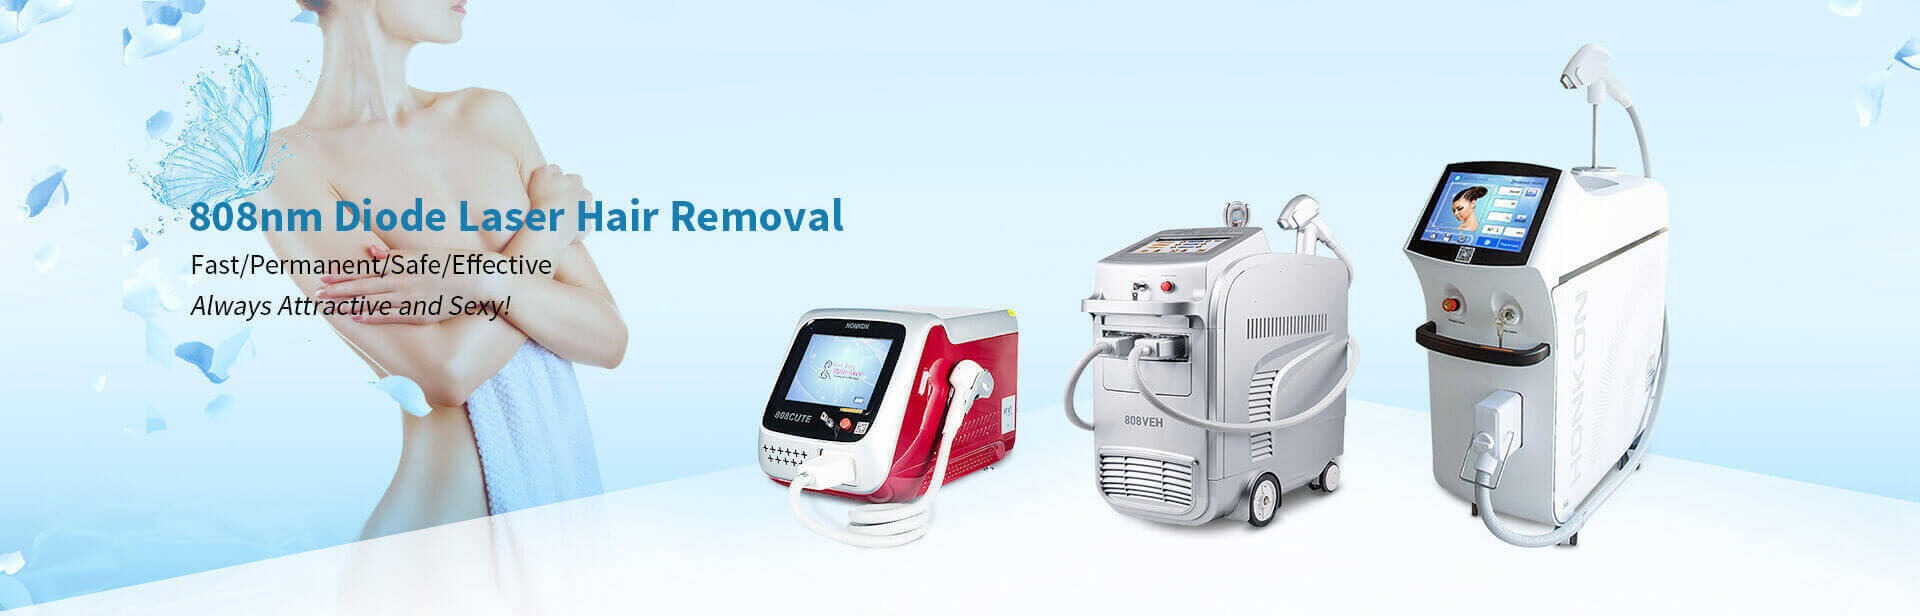 808nm diode laser hair removel machine